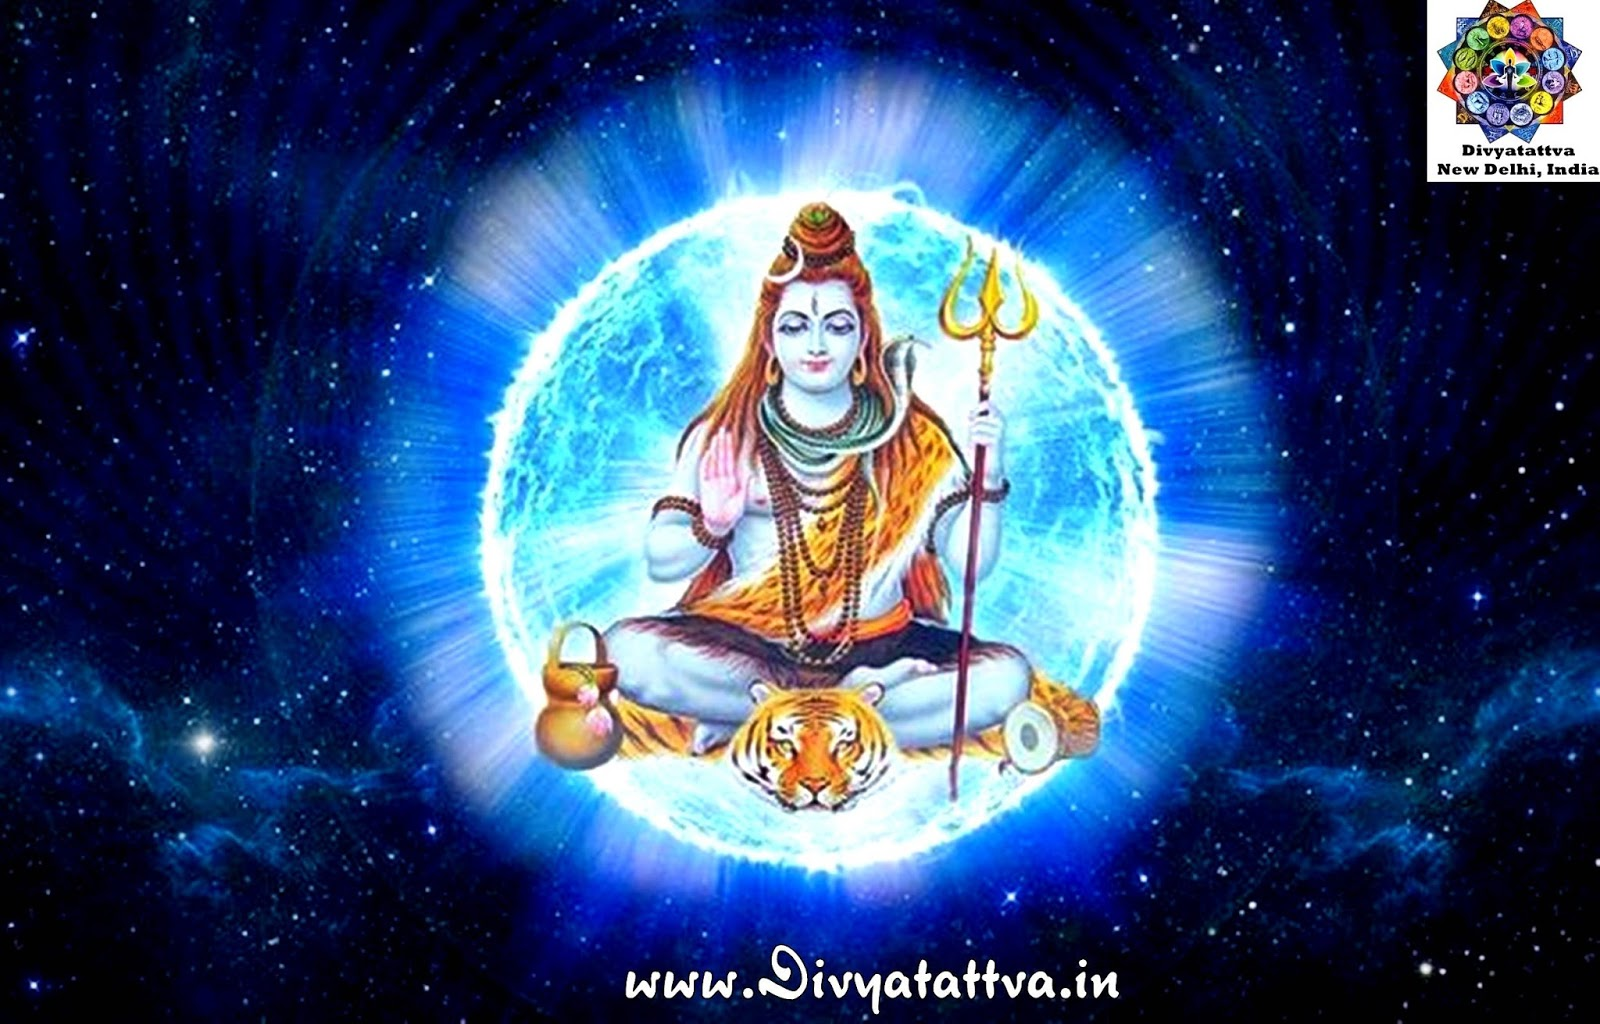 Shiva 3d Wallpaper Parvati Hindu Gods Goddess Photos Spiritual Images Shiv